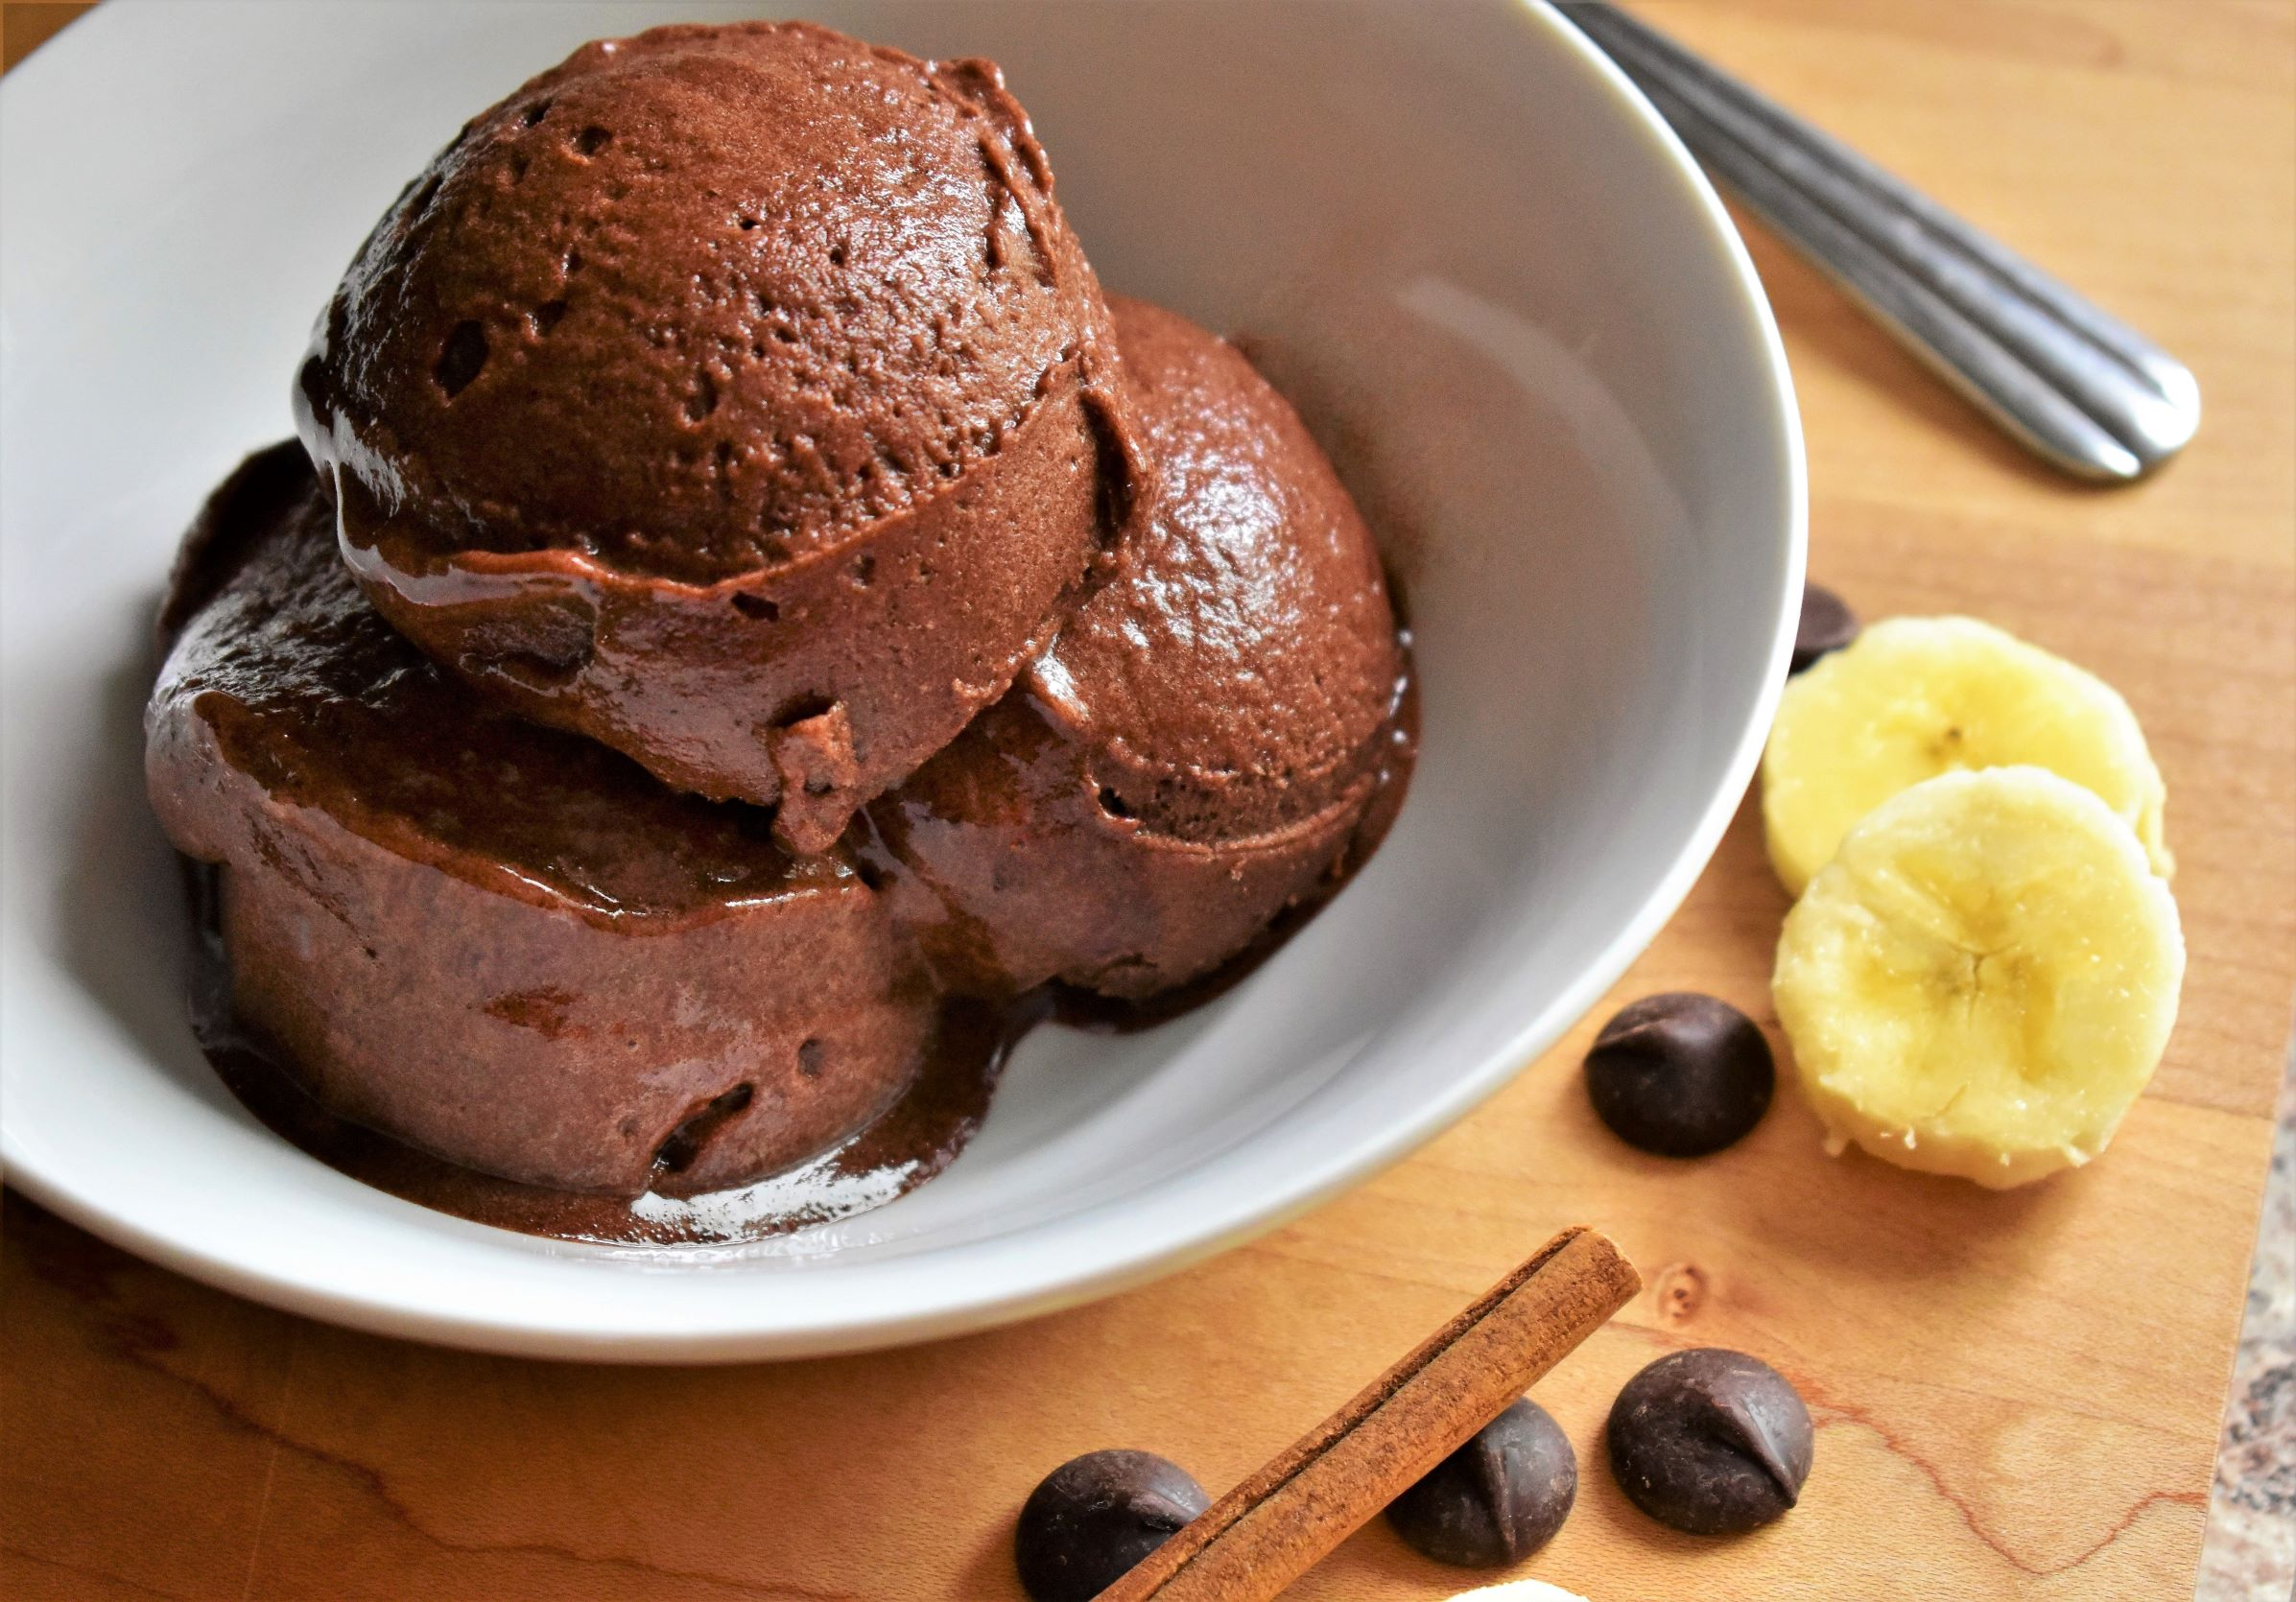 Banana-Cinnamon Chocolate Sorbet Kim